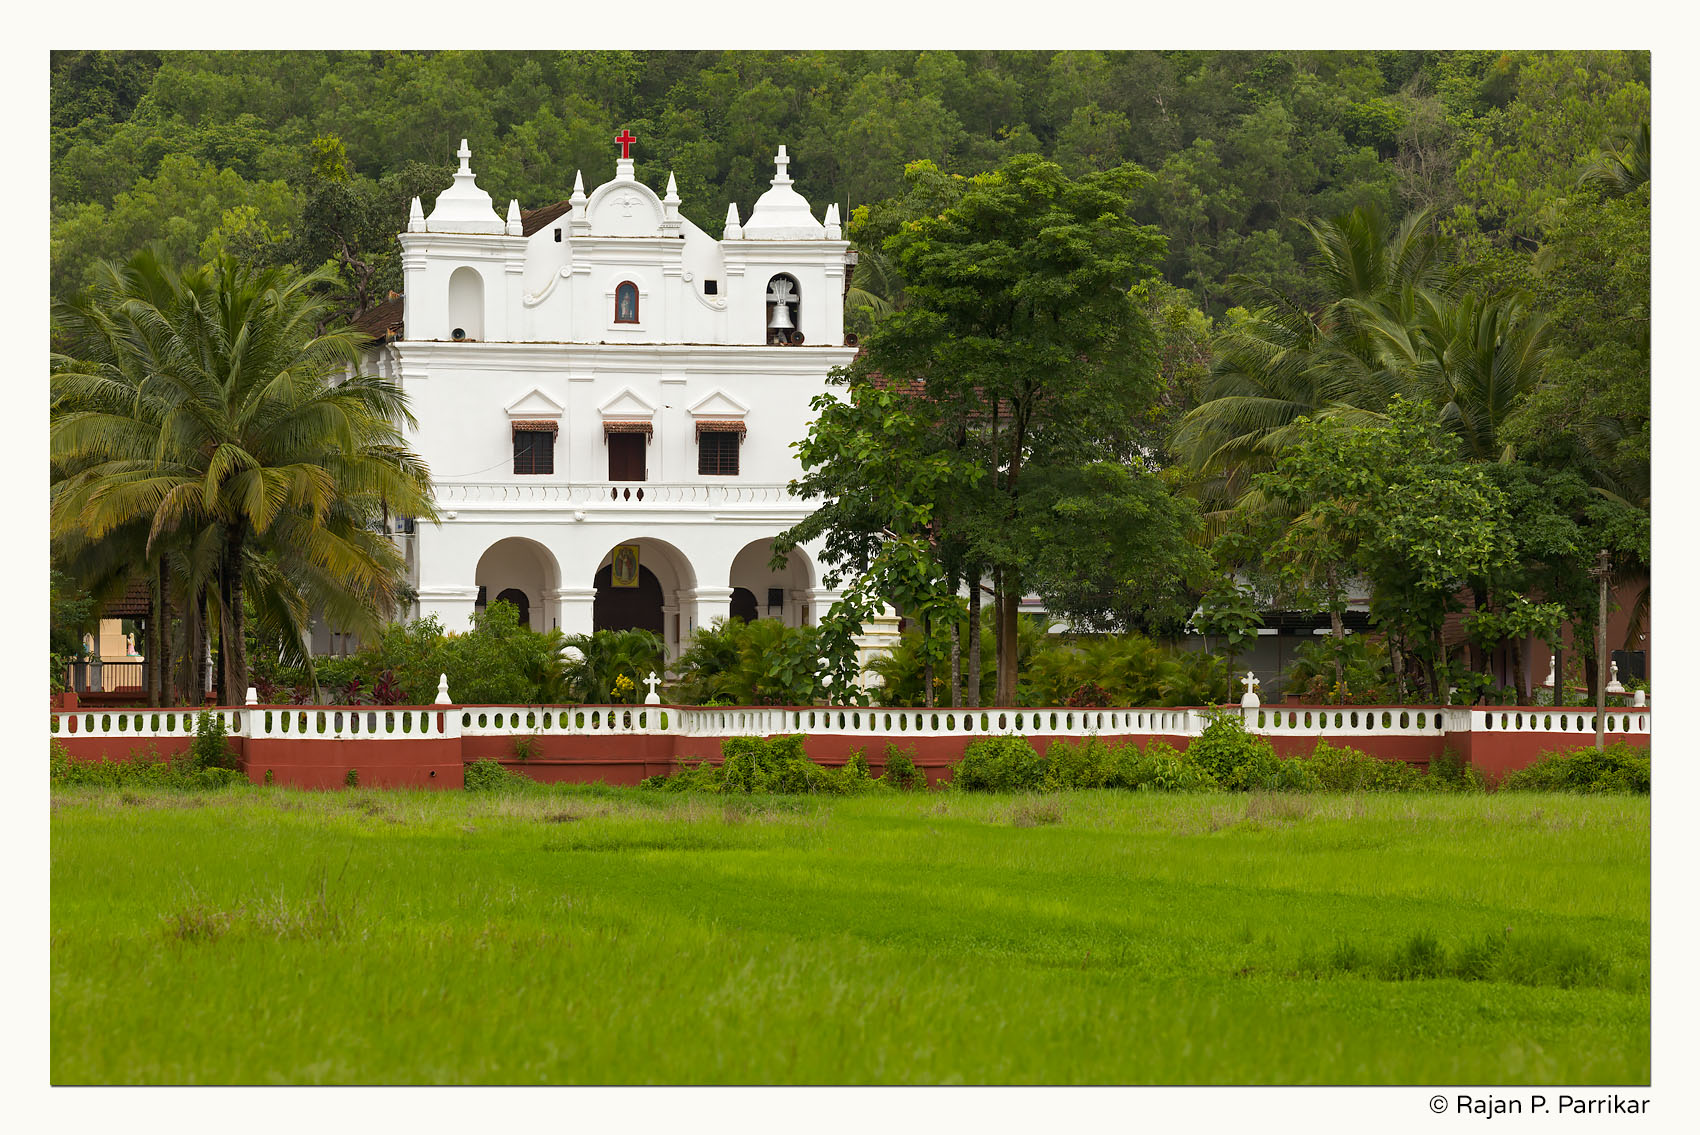 St. Anne Church in Parra, Goa